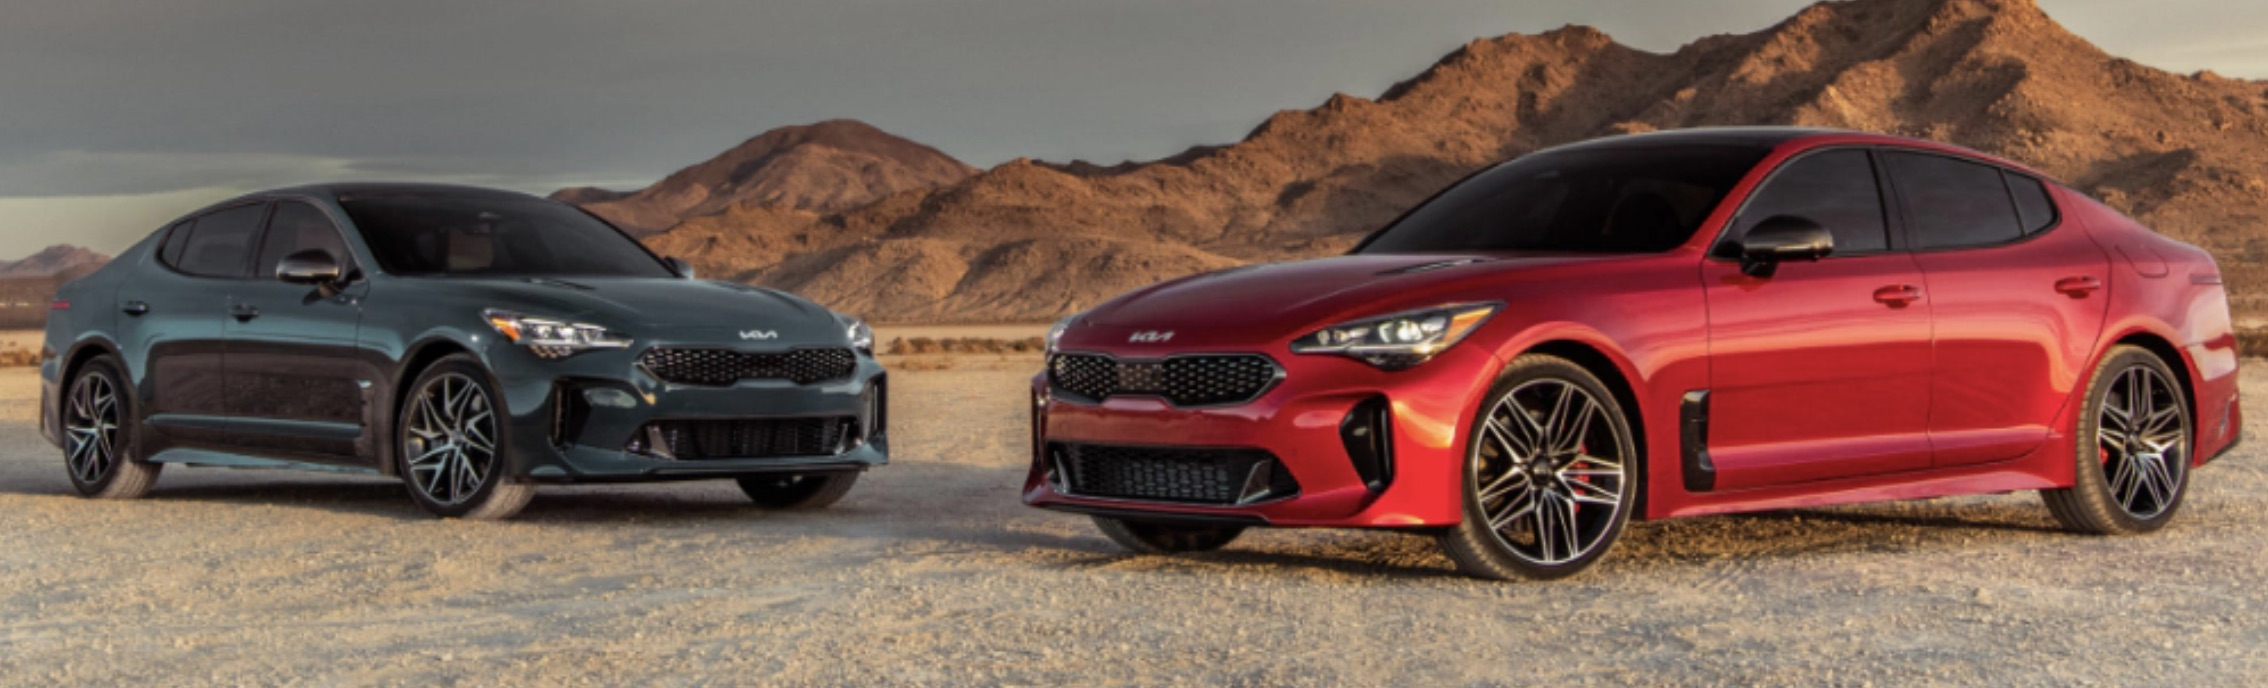 Photos of two Kia Stinger models in the background.